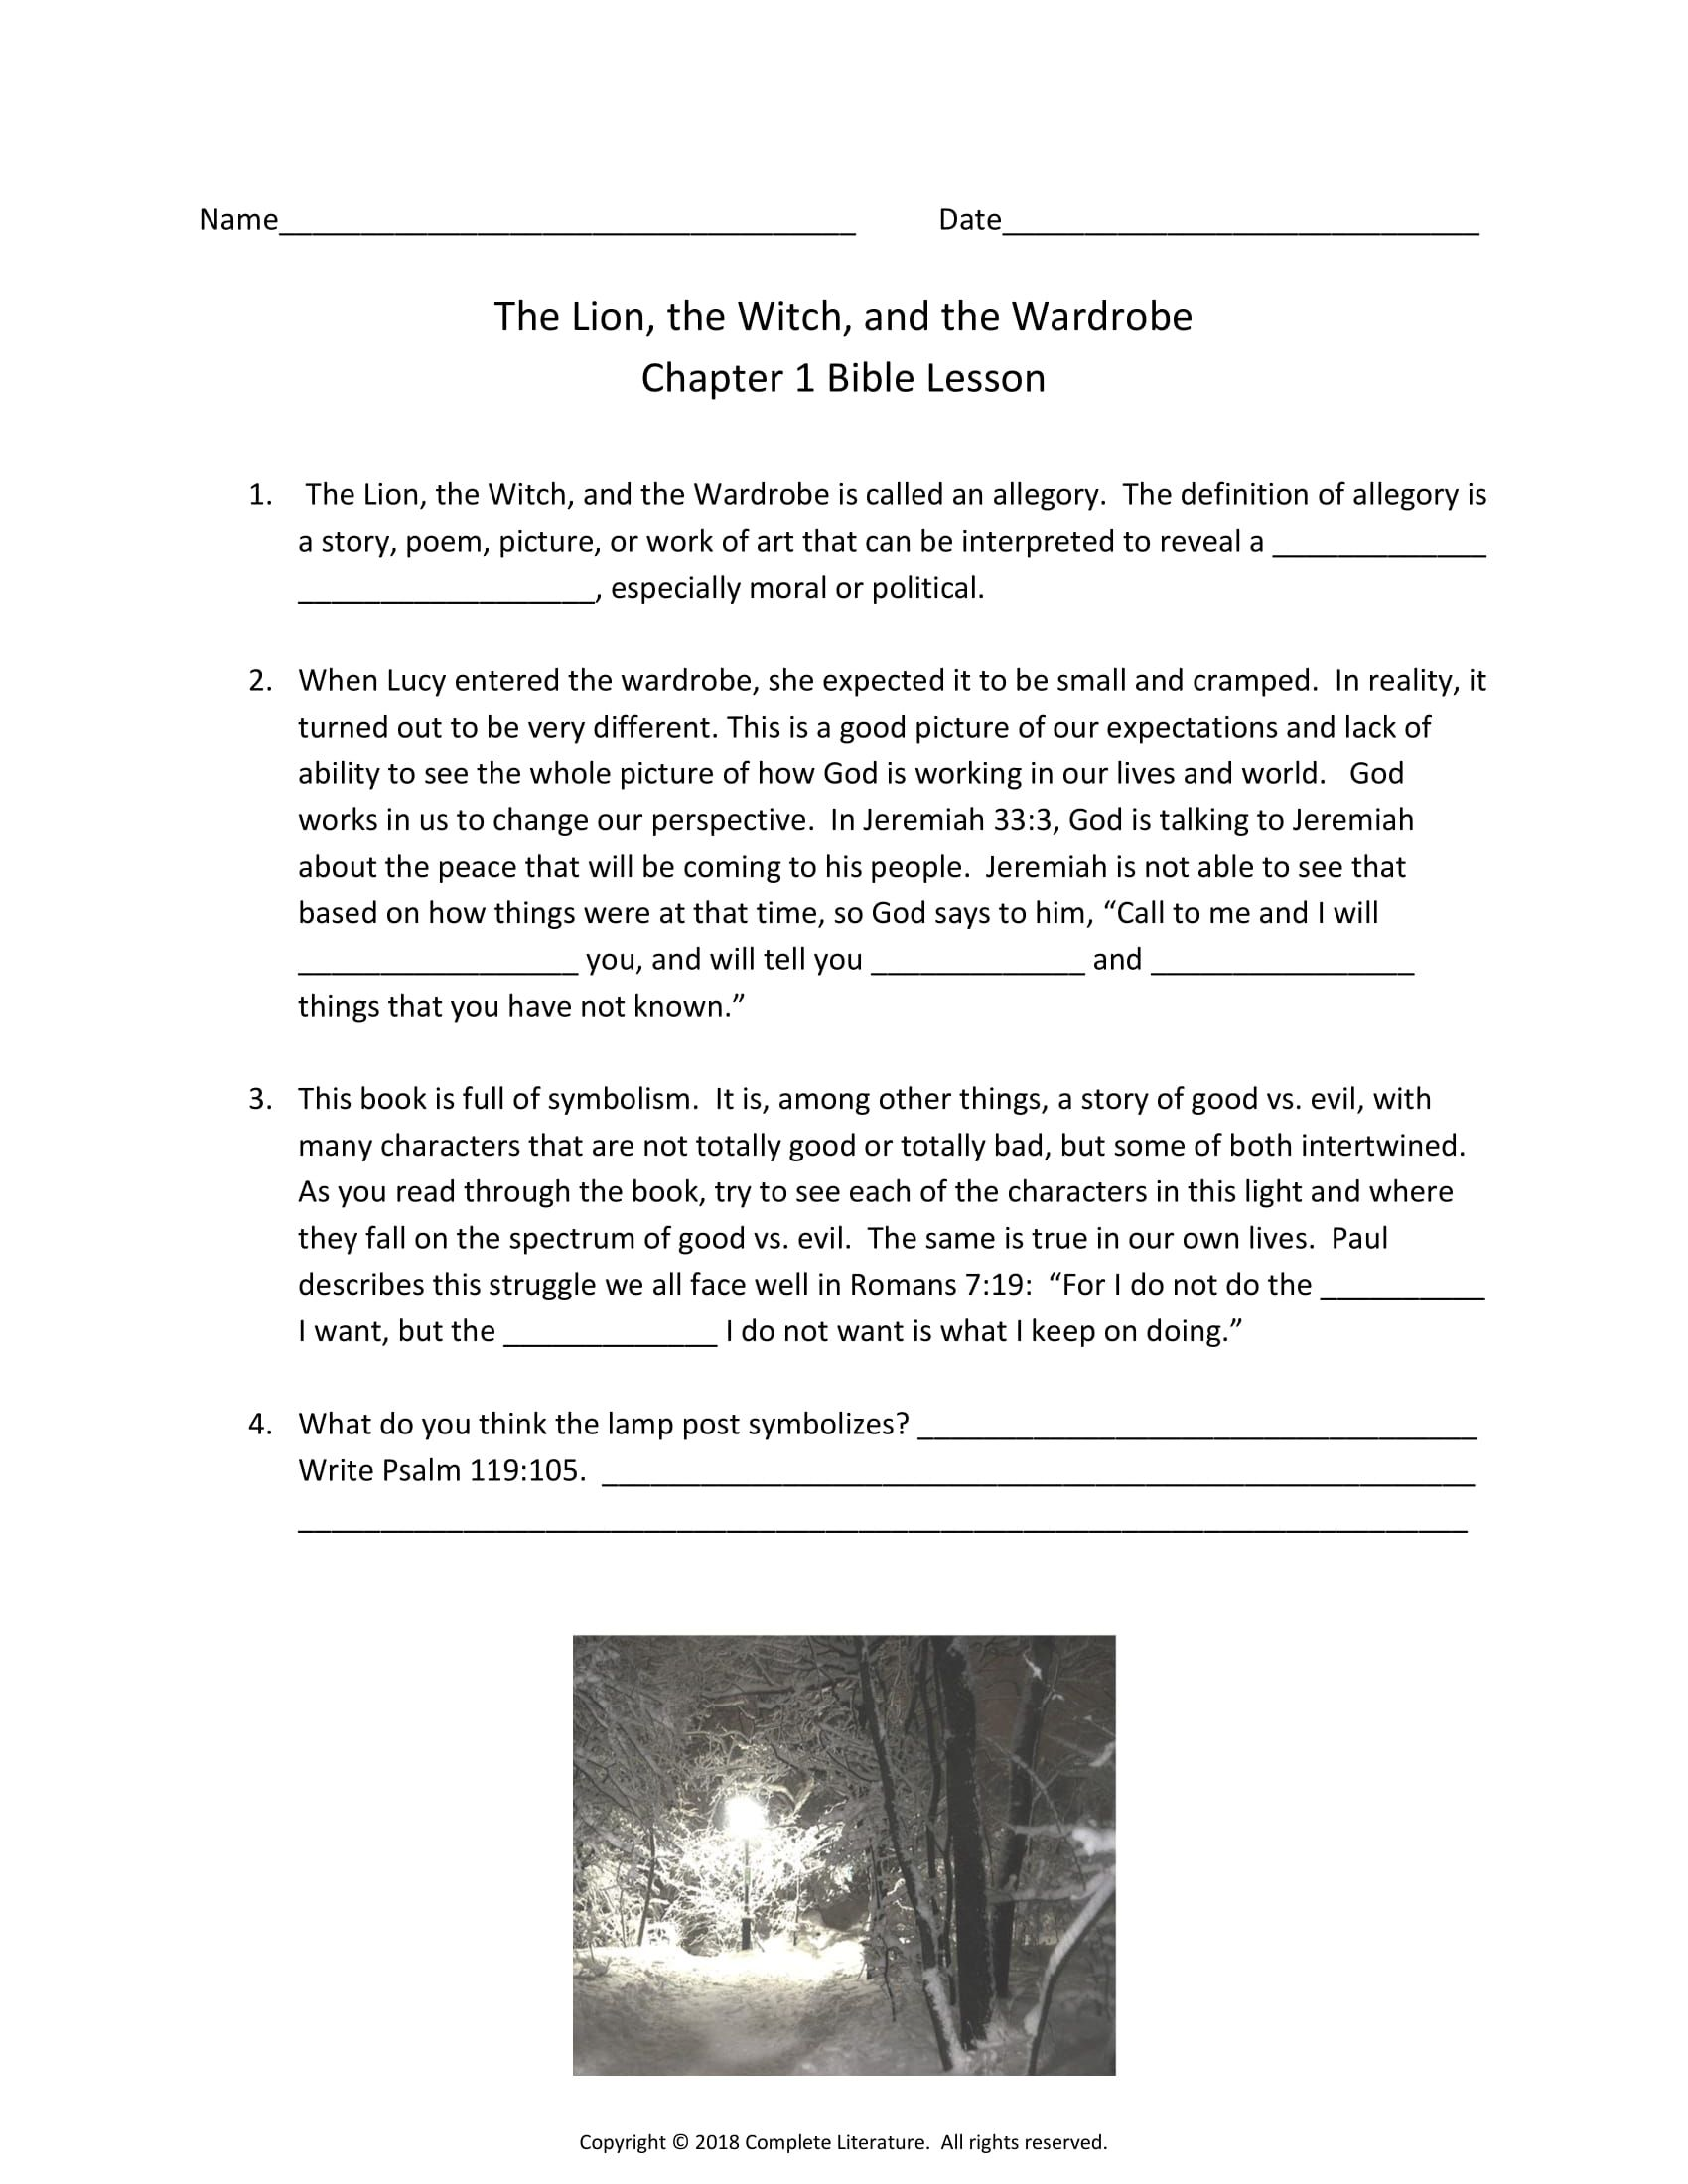 This Worksheet Is Perfect To See How The Bible Relates To